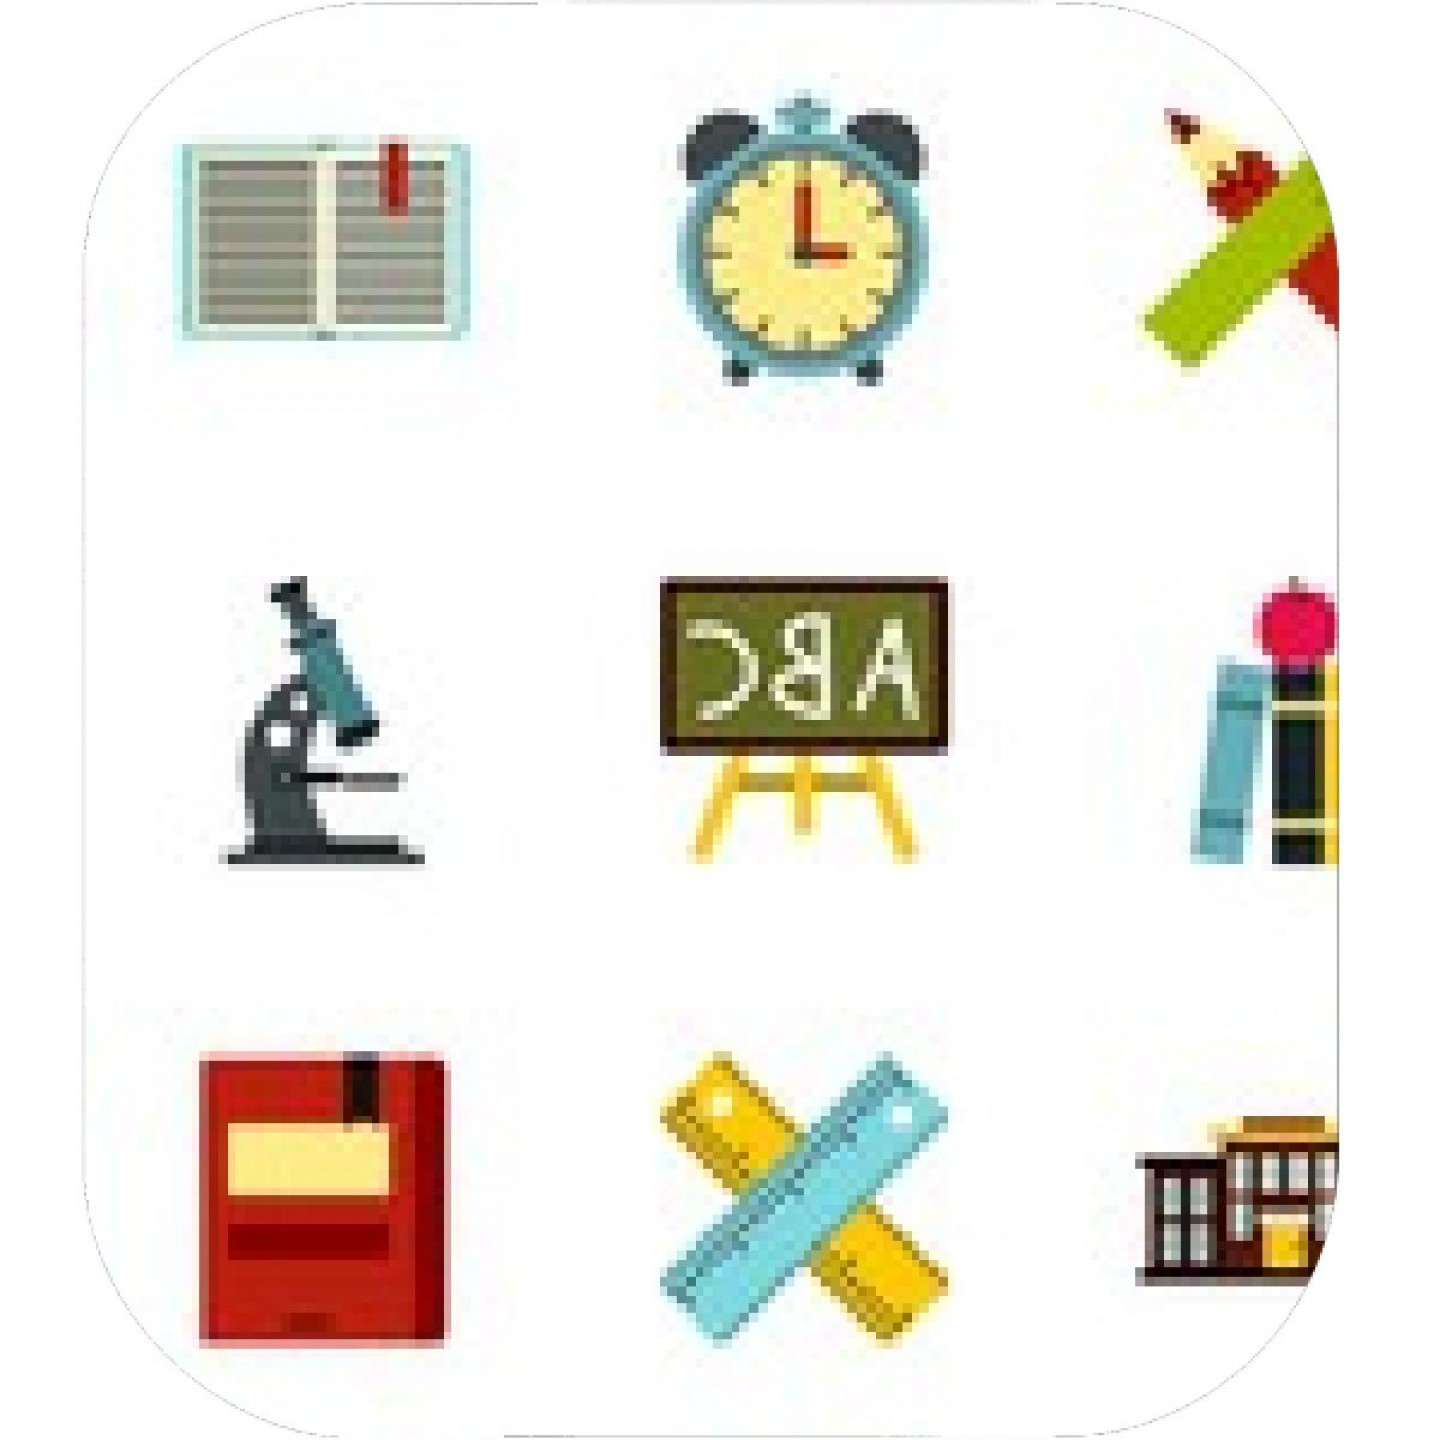 Vector Clip Art Red Schoolhouse: Schoolhouse Icons Set Flat Illustration Of Schoolhouse Vector Icons For Web